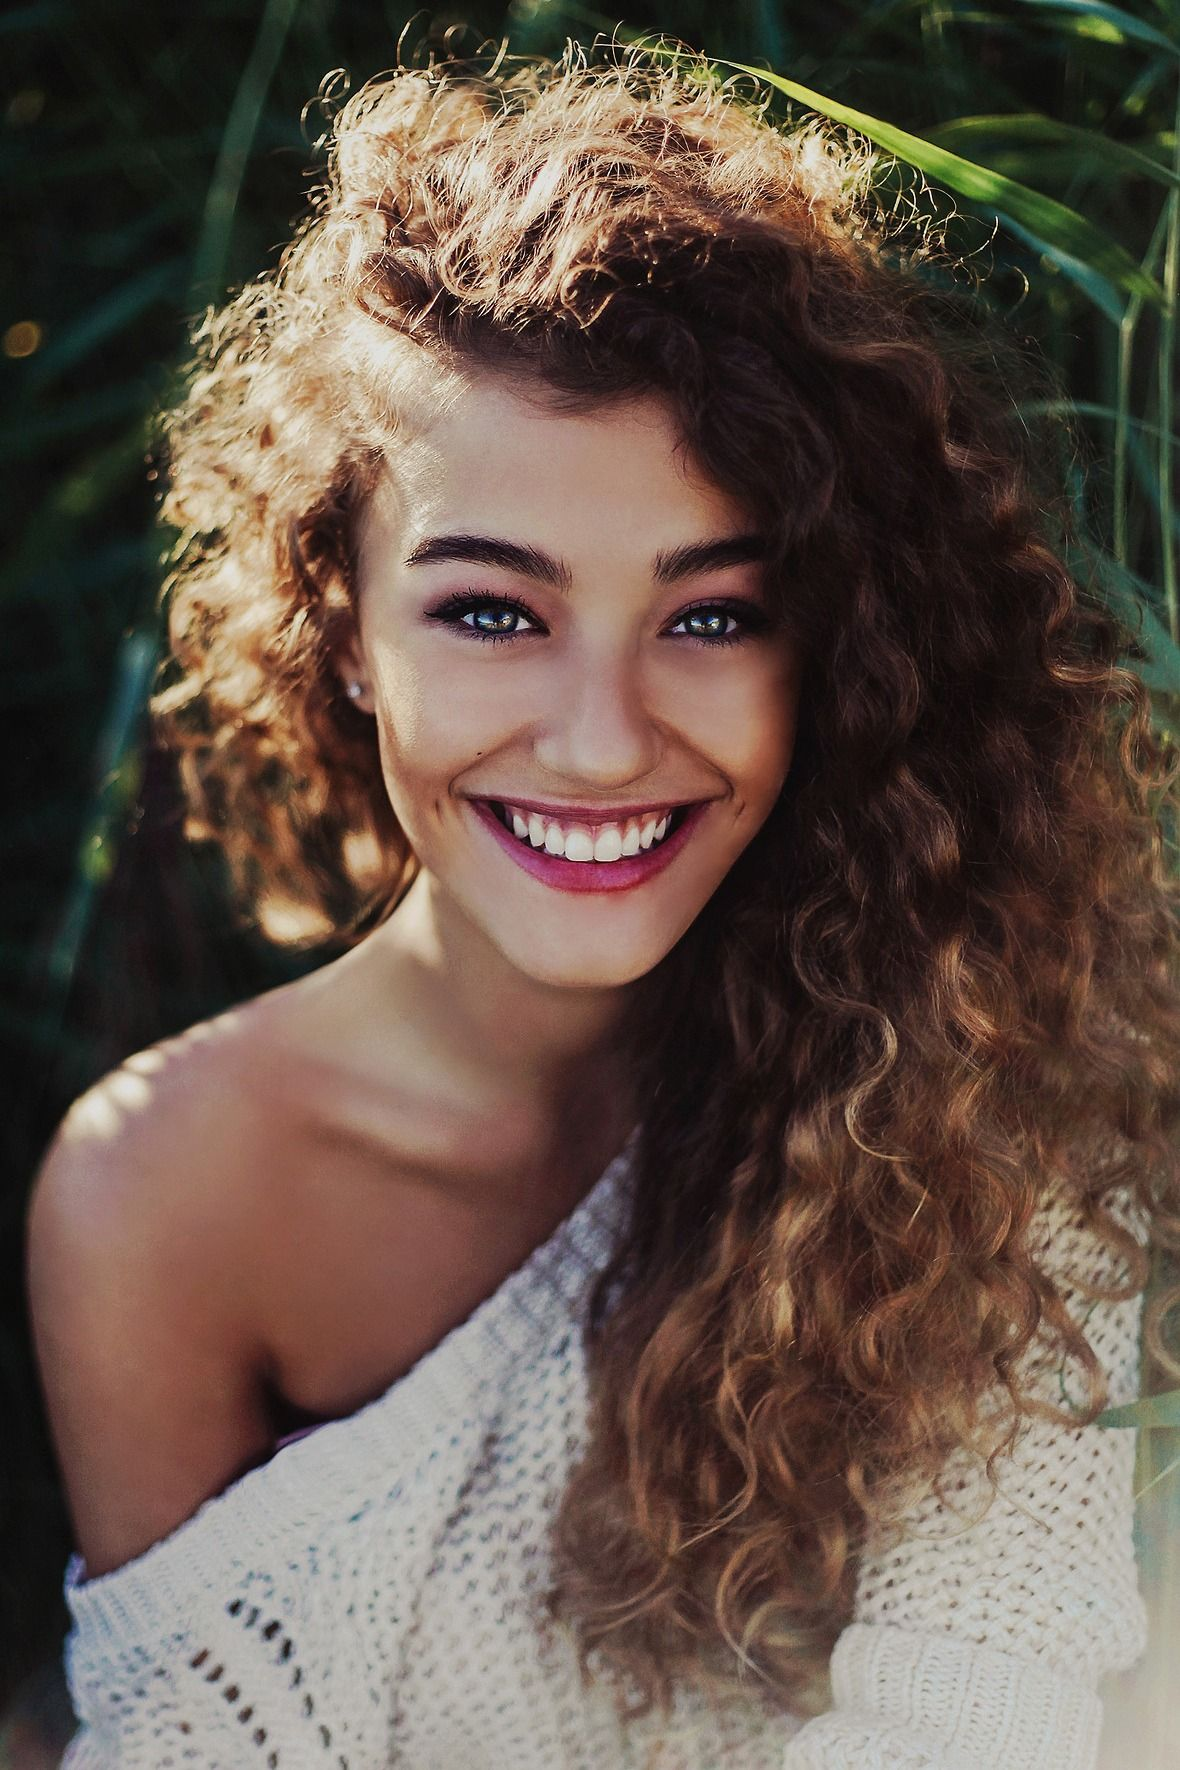 """natural curls - damp hair is in the optimal """"frizz free state"""" Read more: https://beautyhigh.com/curly-hair-101-how-to-get-the-best-curls-in-hot-weather/#ixzz37OrxjjoB"""